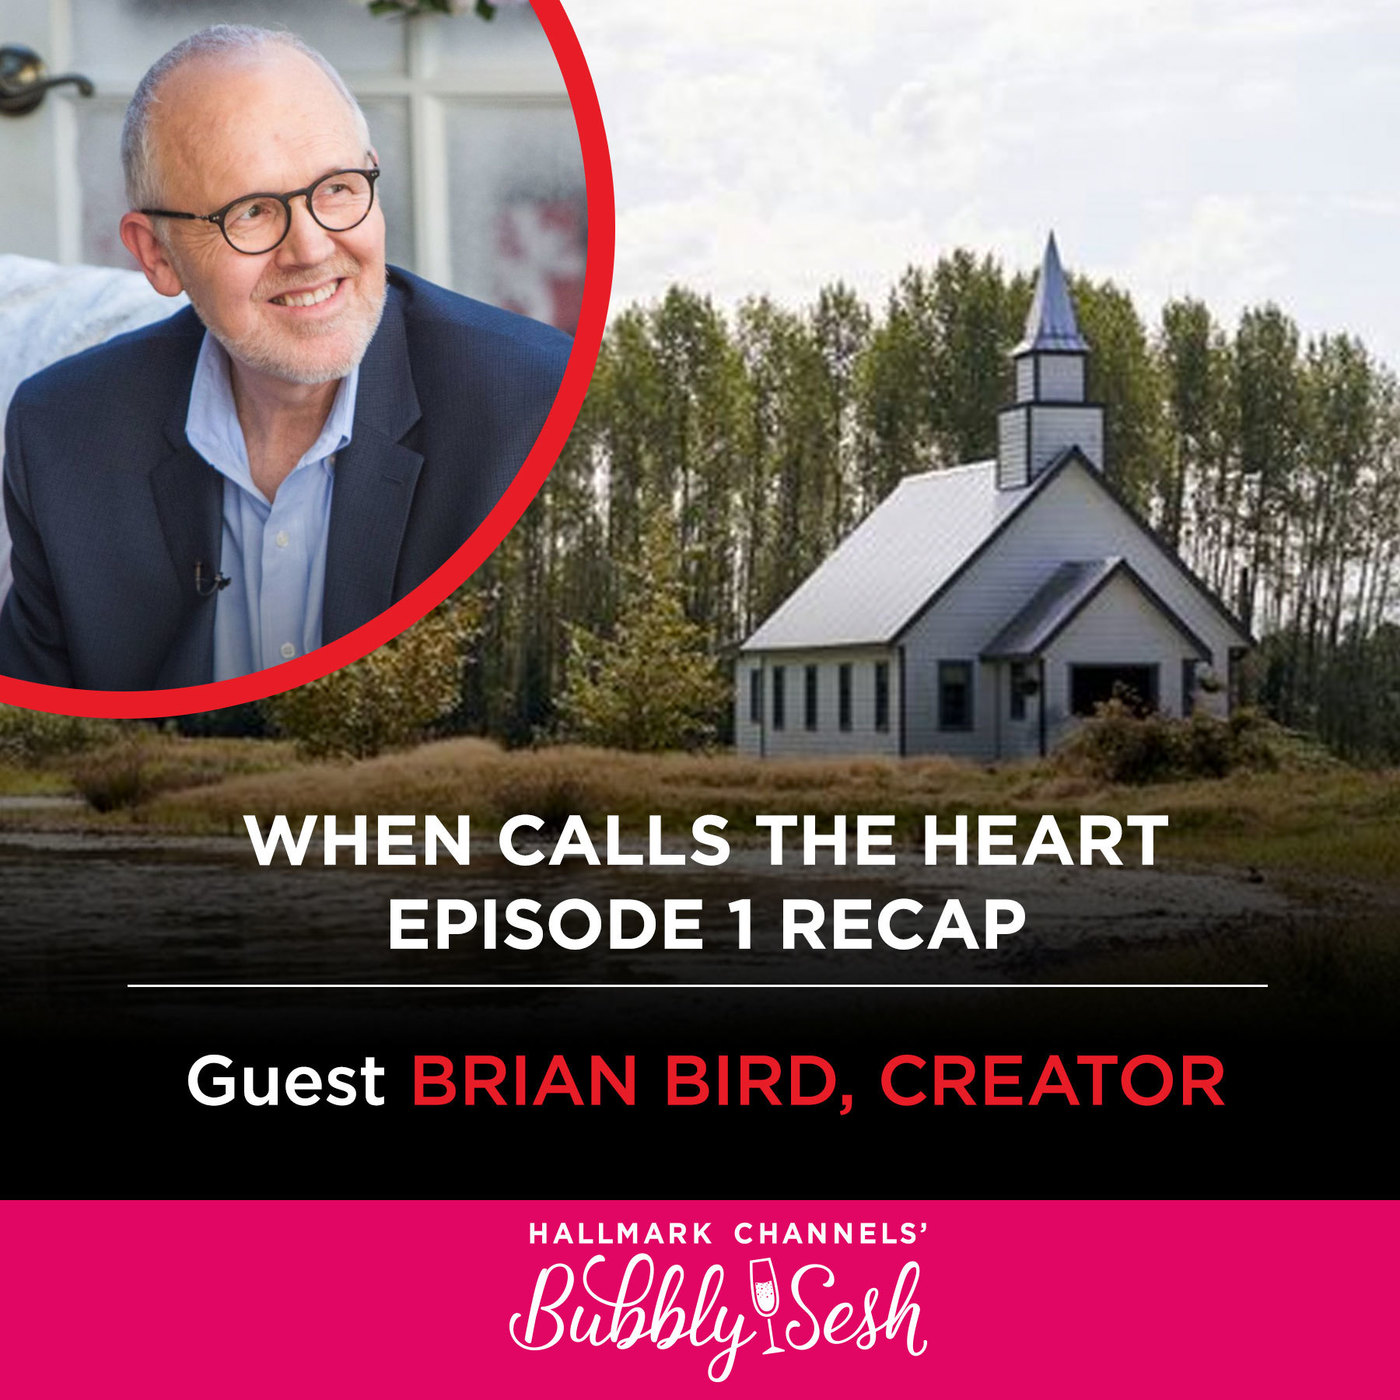 When Calls The Heart Episode 1 Recap with Guest Brian Bird, Creator